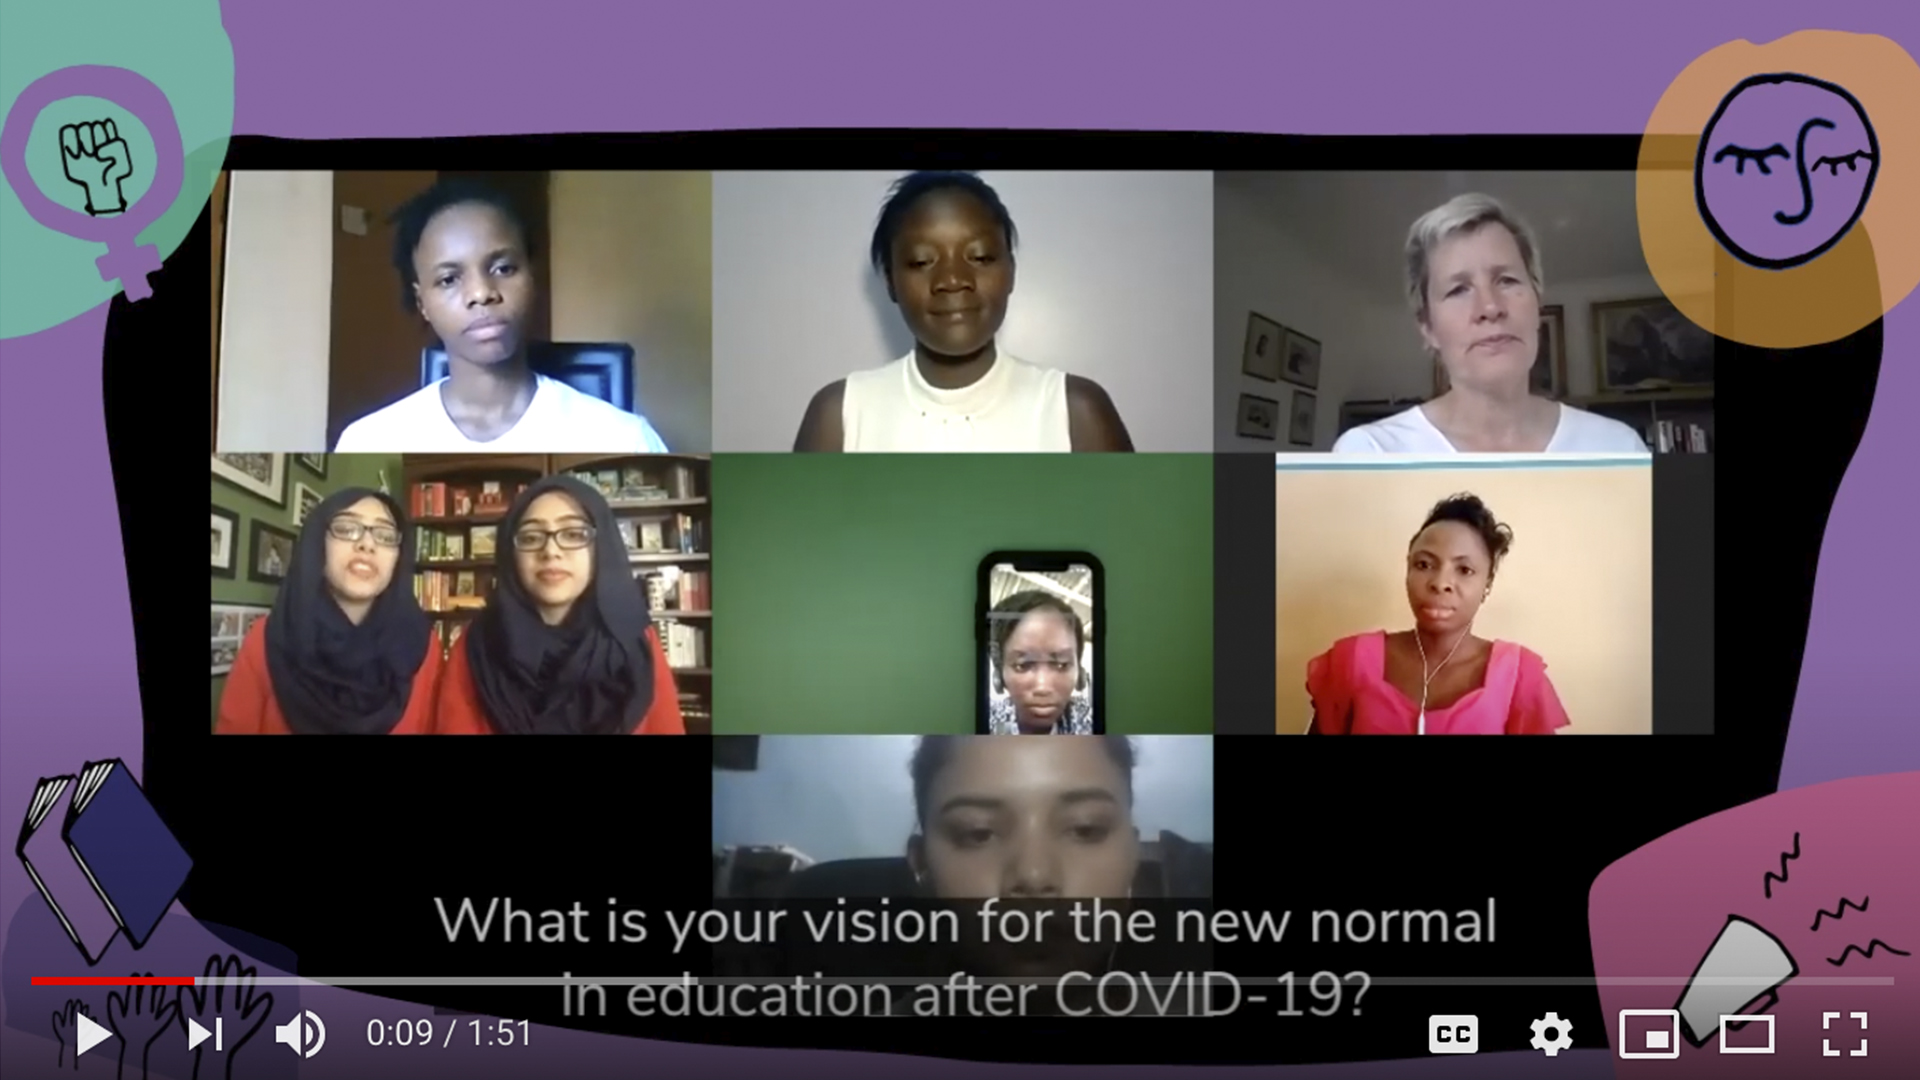 Rebuilding the 'new normal' in education post COVID-19